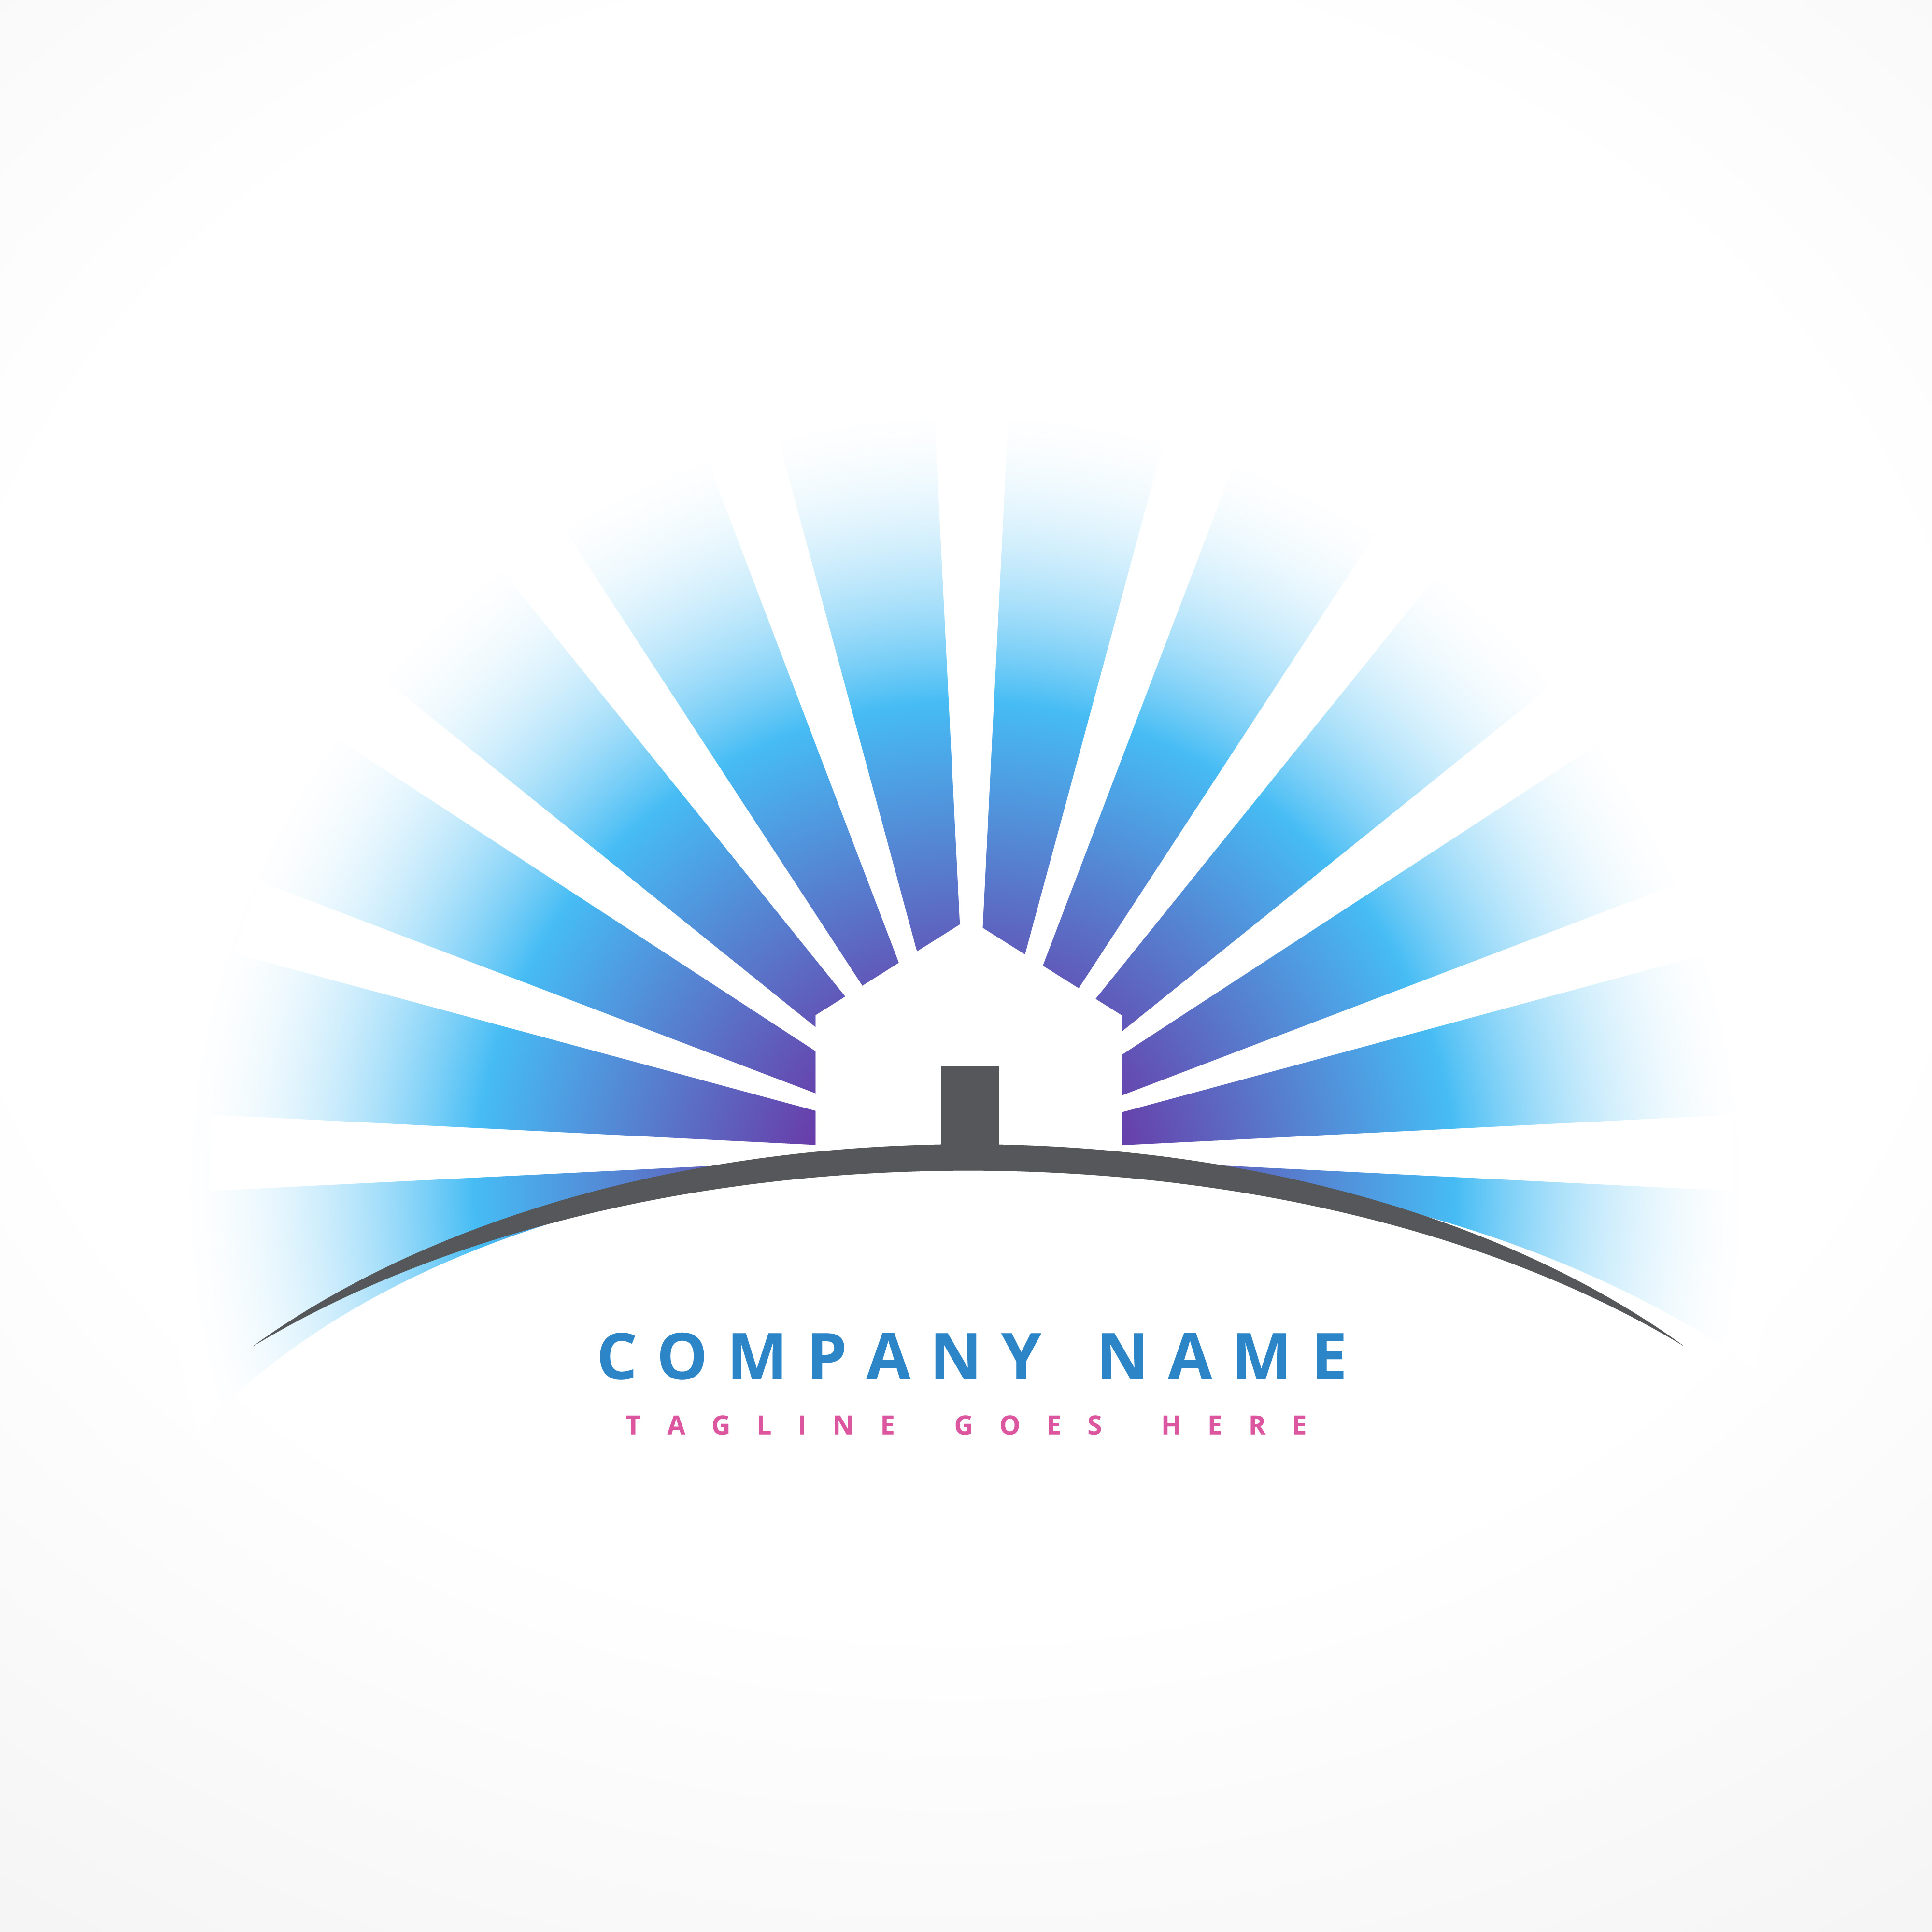 House with sun rays company logo design download free for Design lago